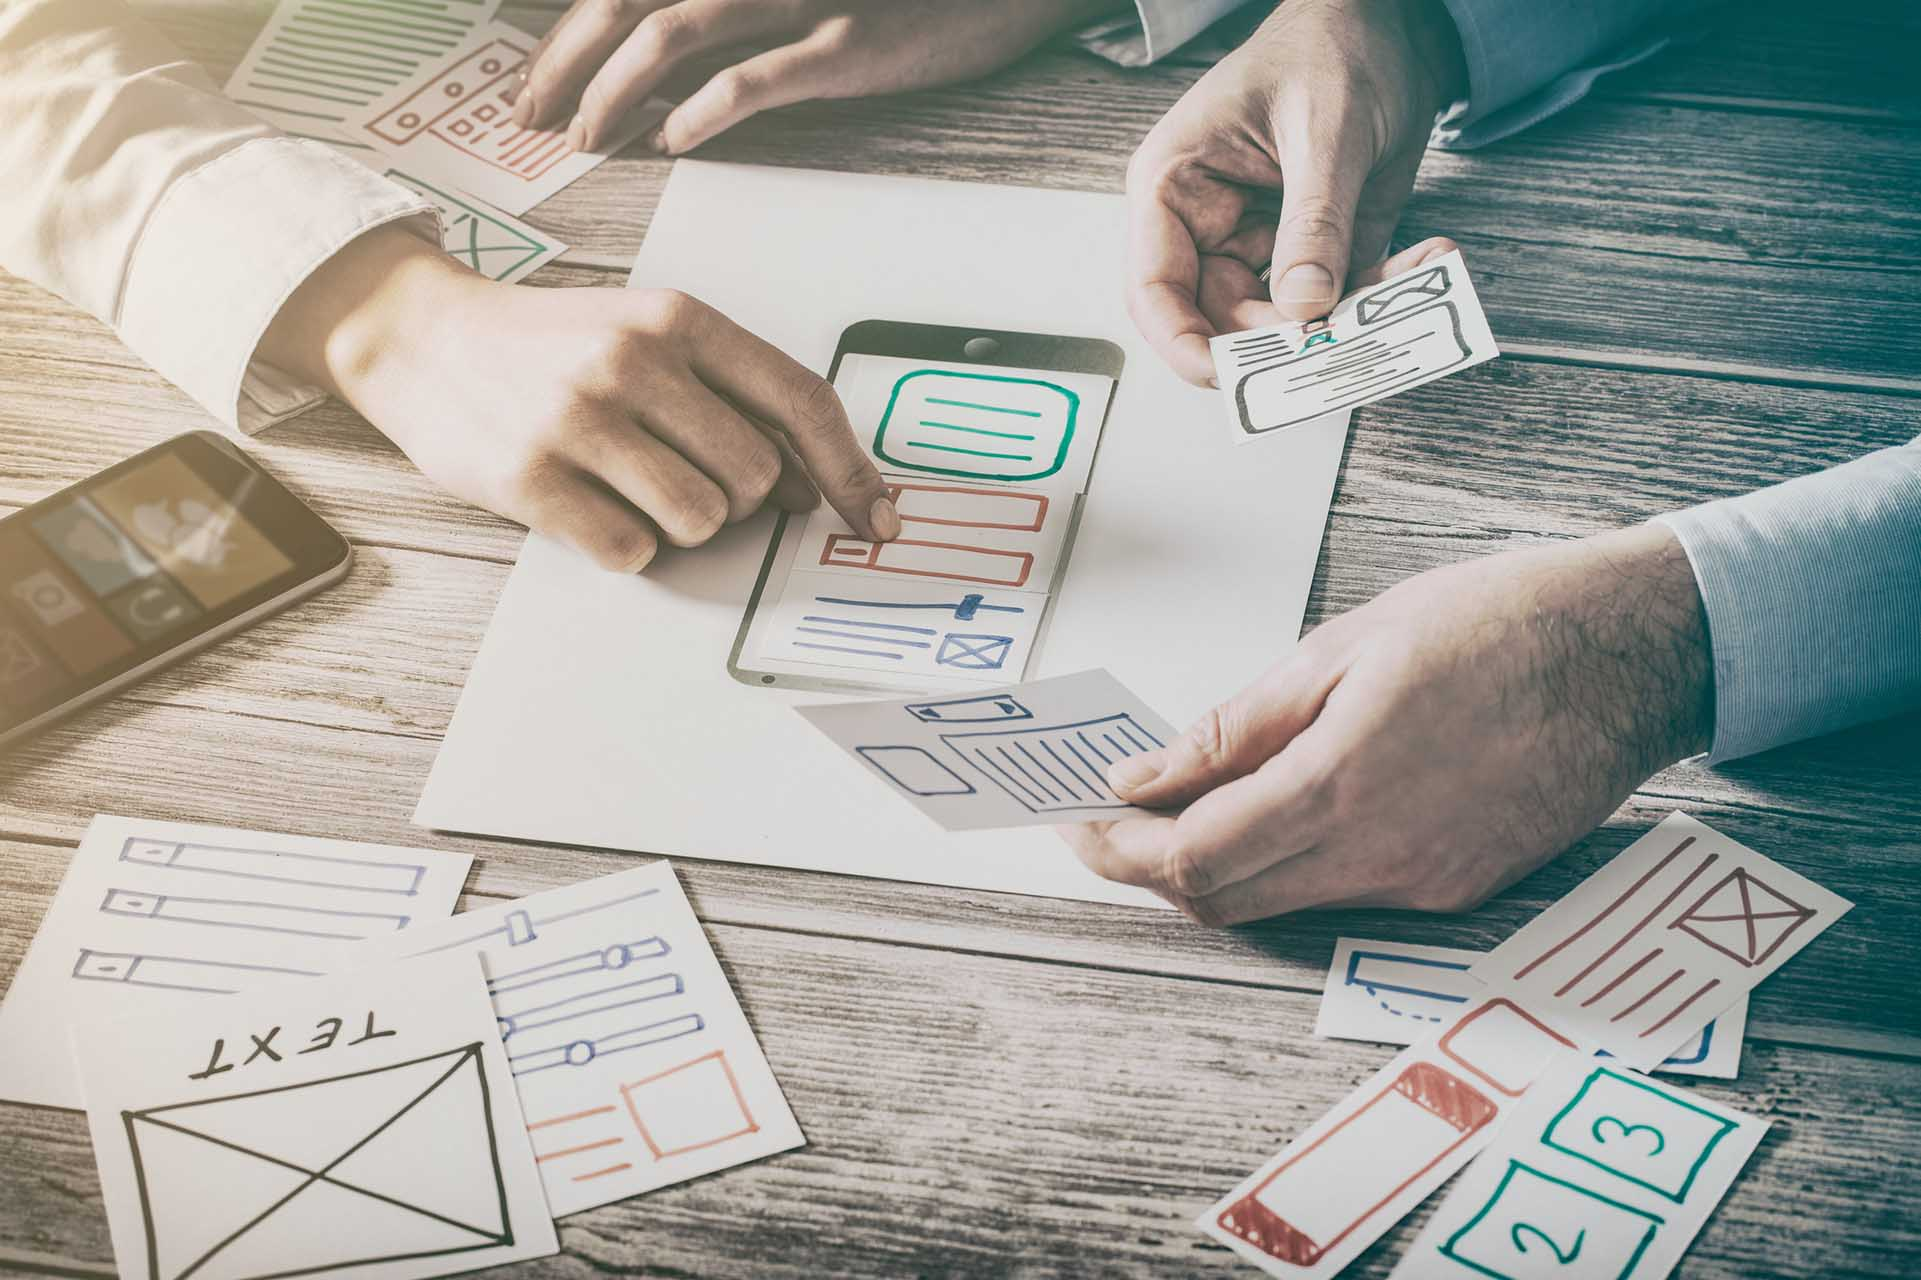 Website Wireframes and Prototypes - A Guide for Clients